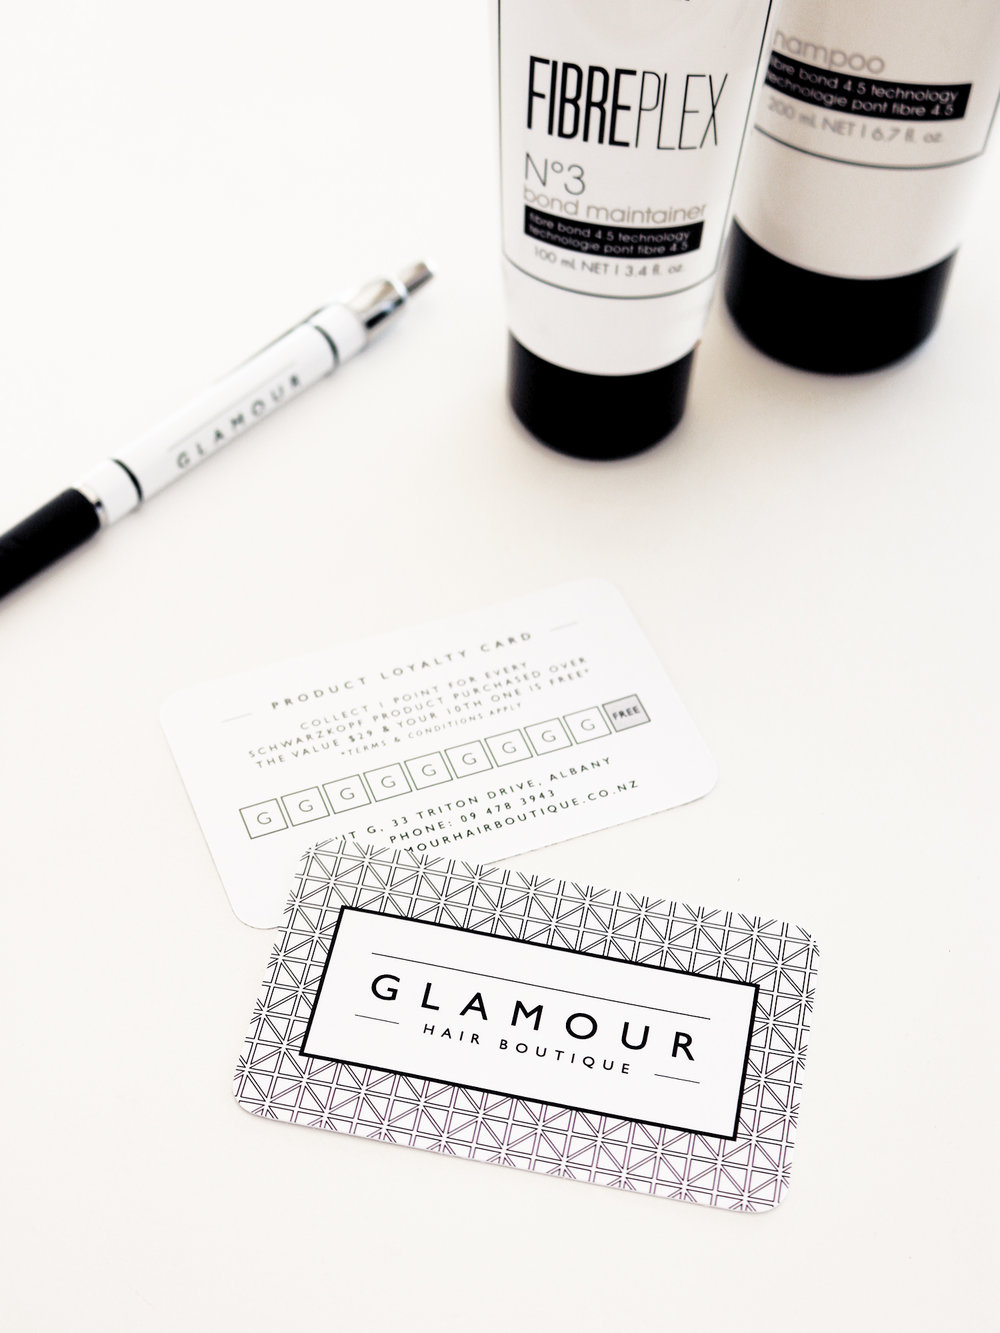 glamour-boutique-product-loyalty-card-1.jpg